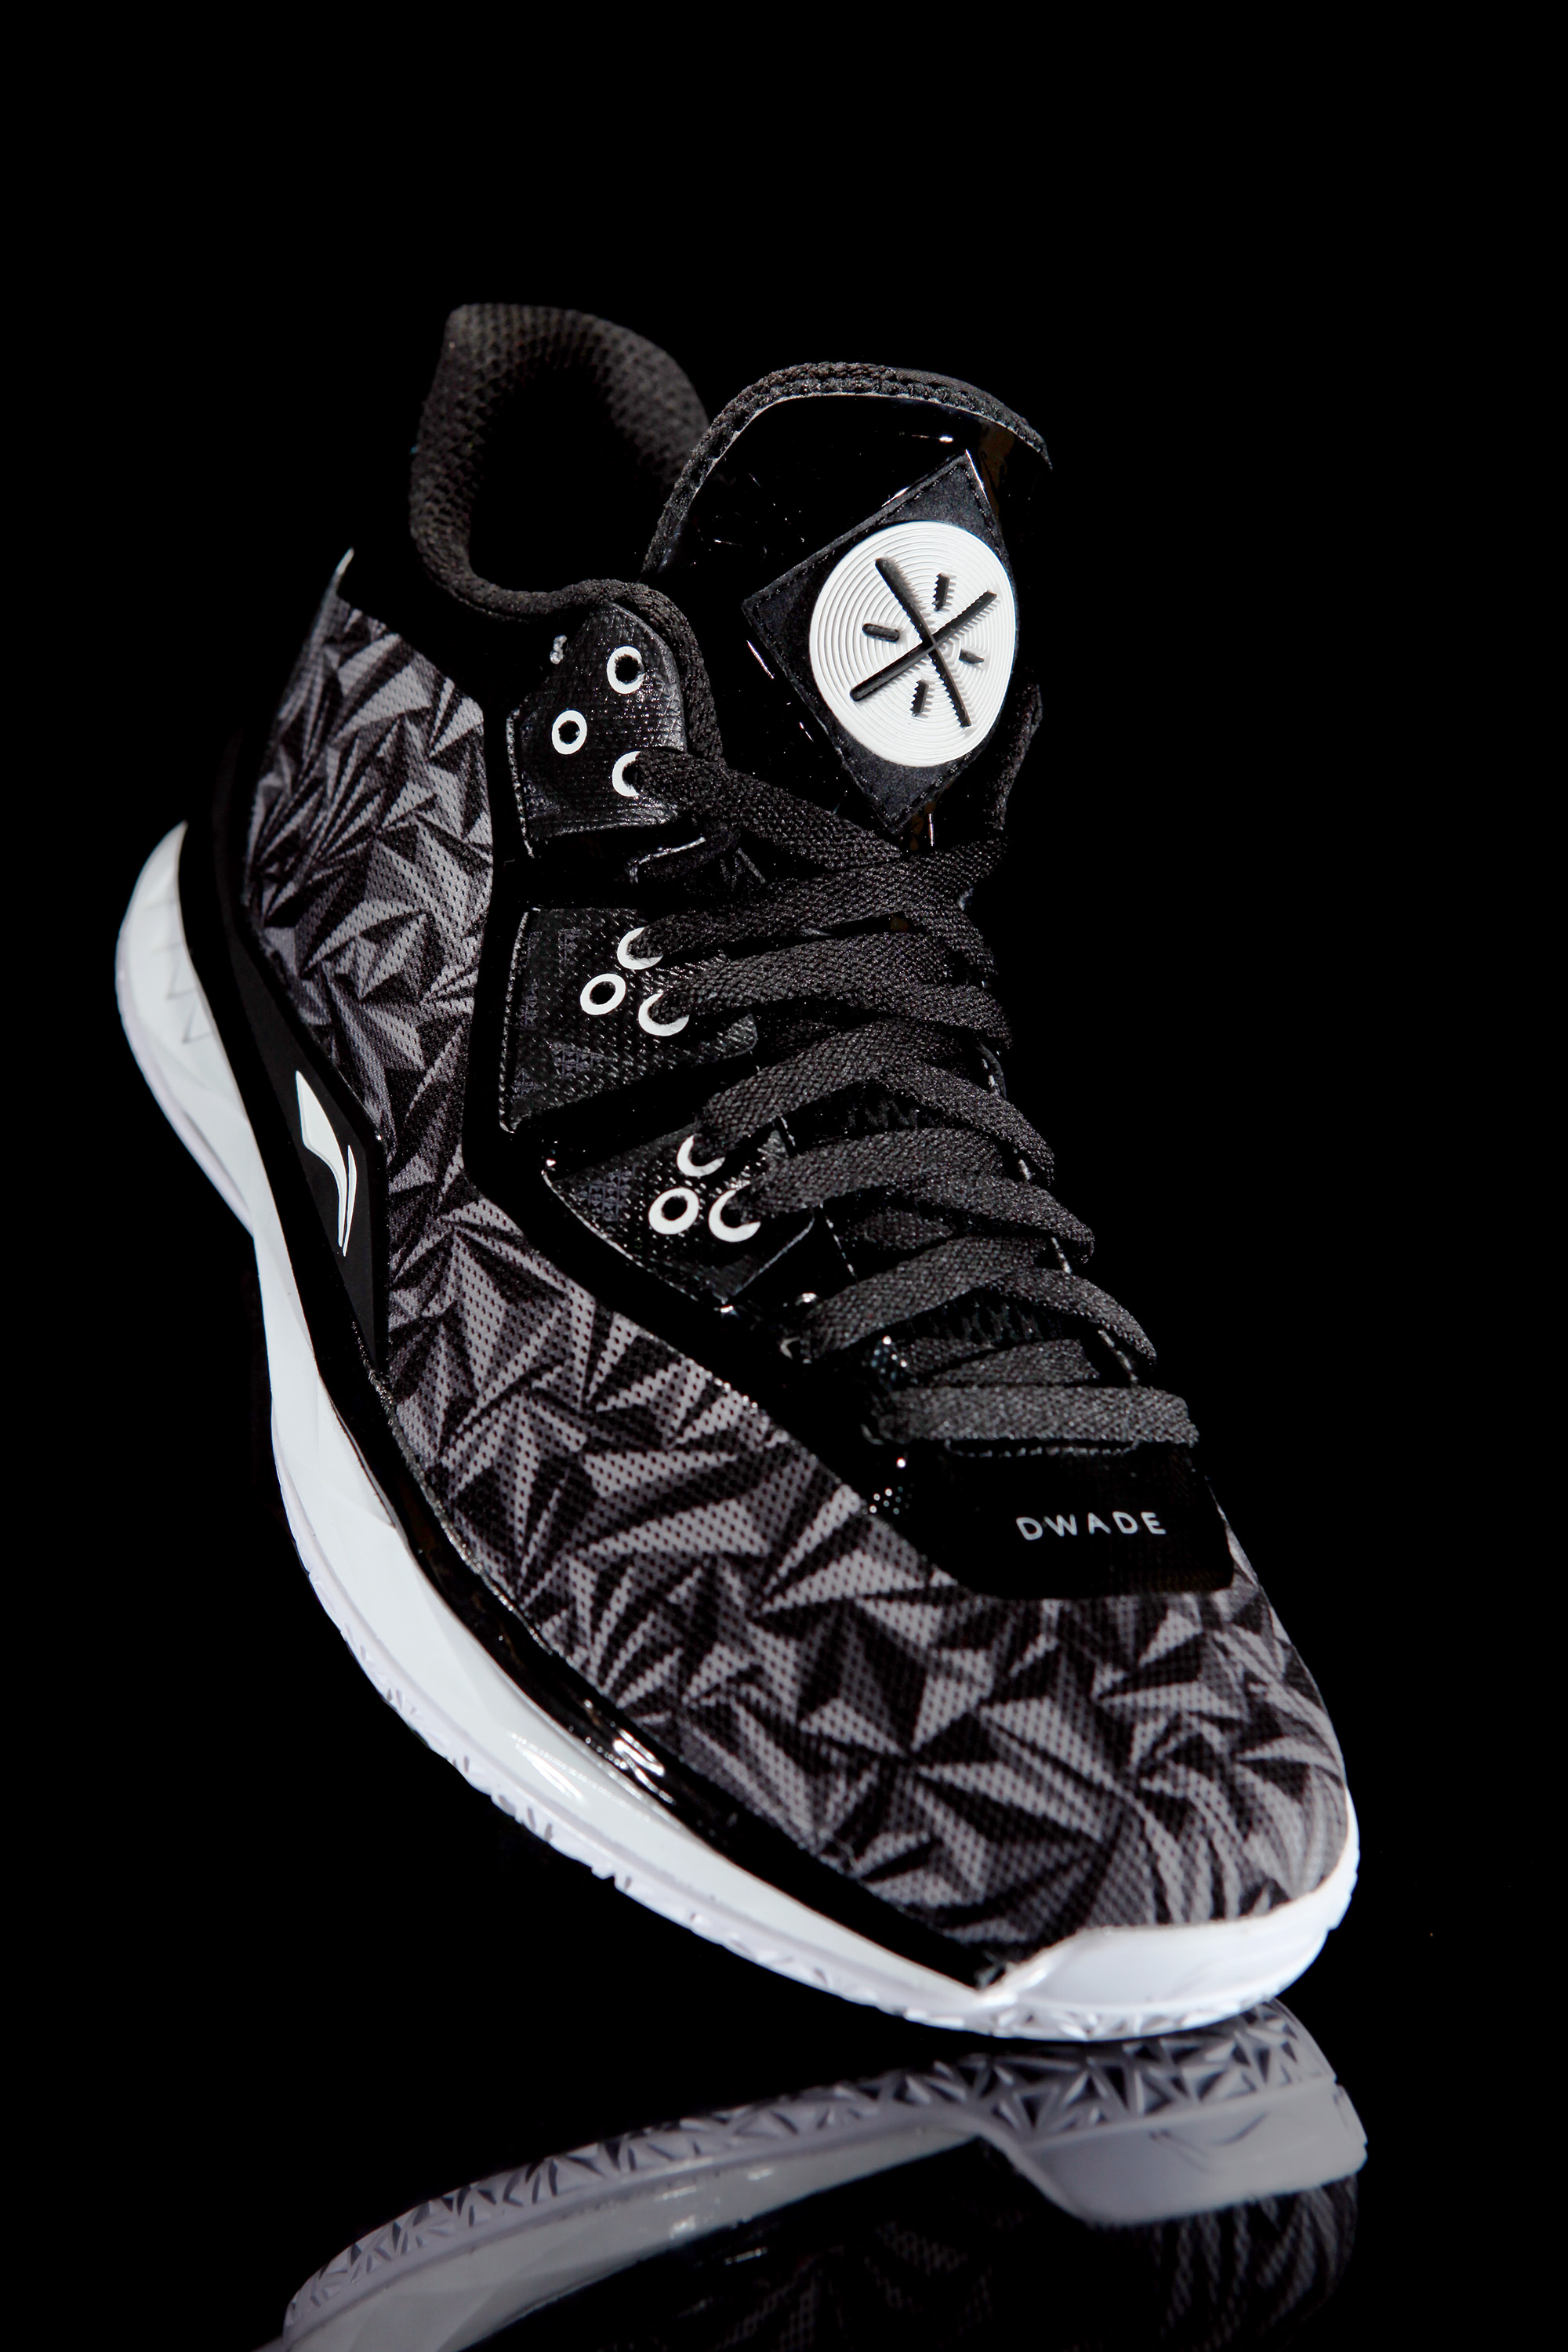 Li-Ning Way of Wade 4 Origami Stealth